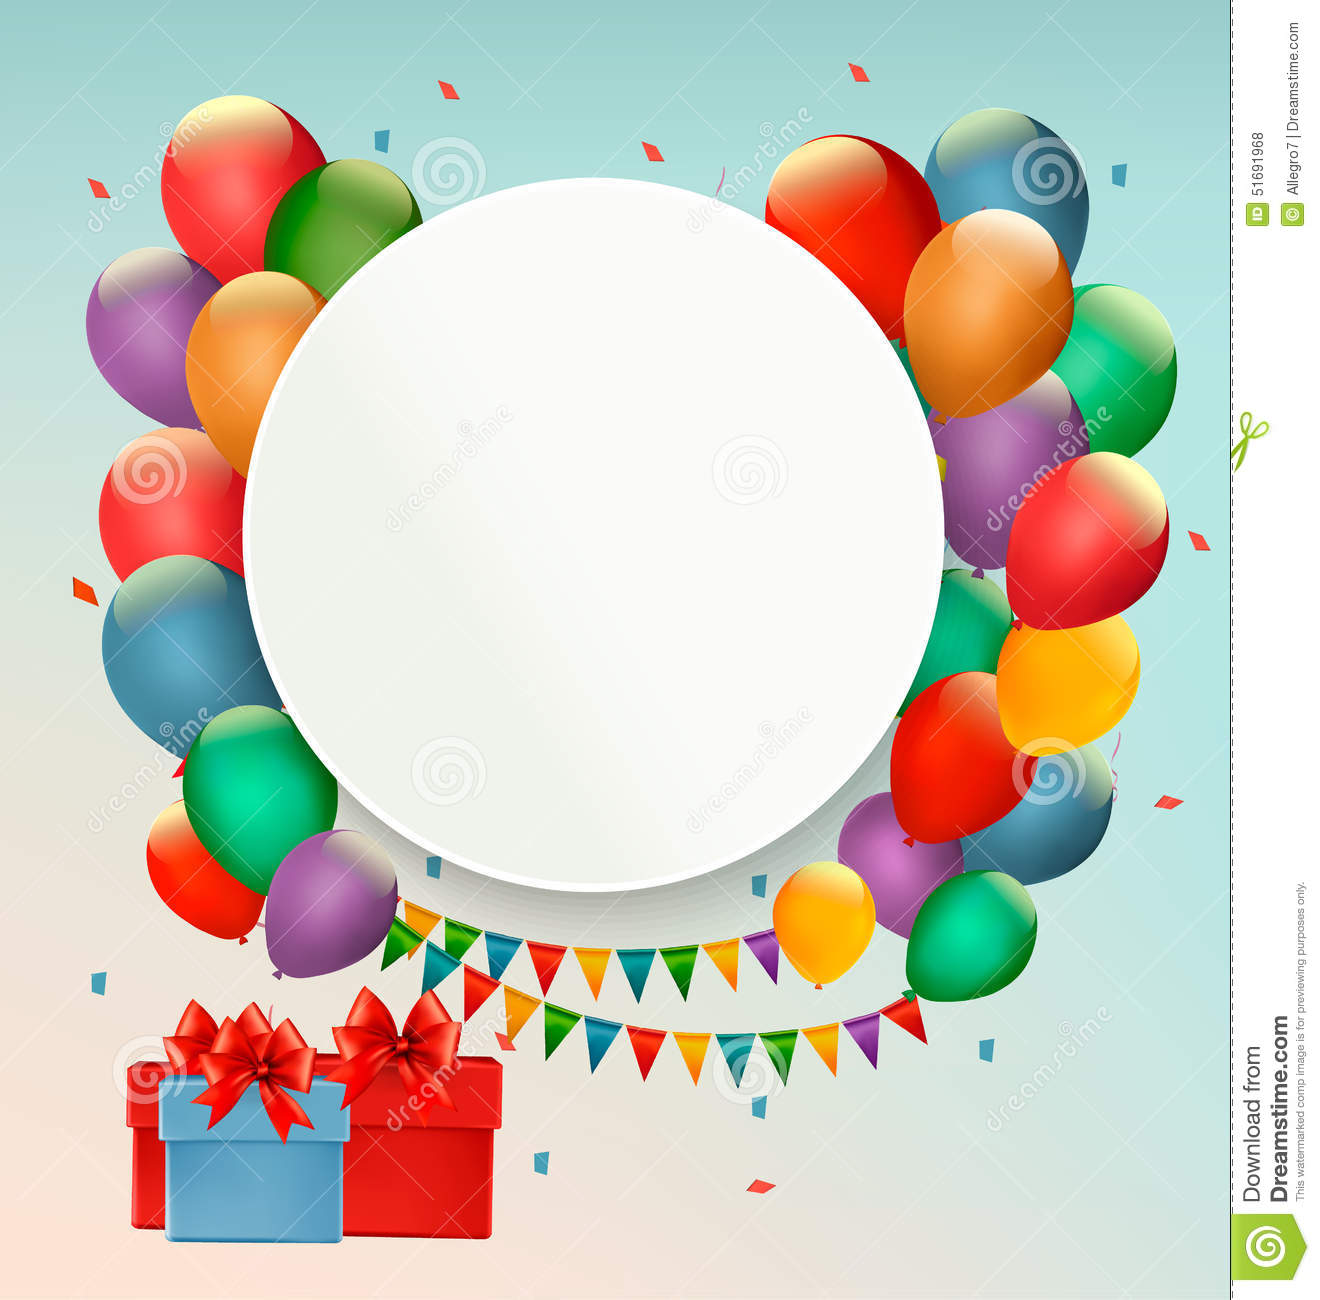 Happy Birthday Background With Balloons And Presents. Stock Vector ...